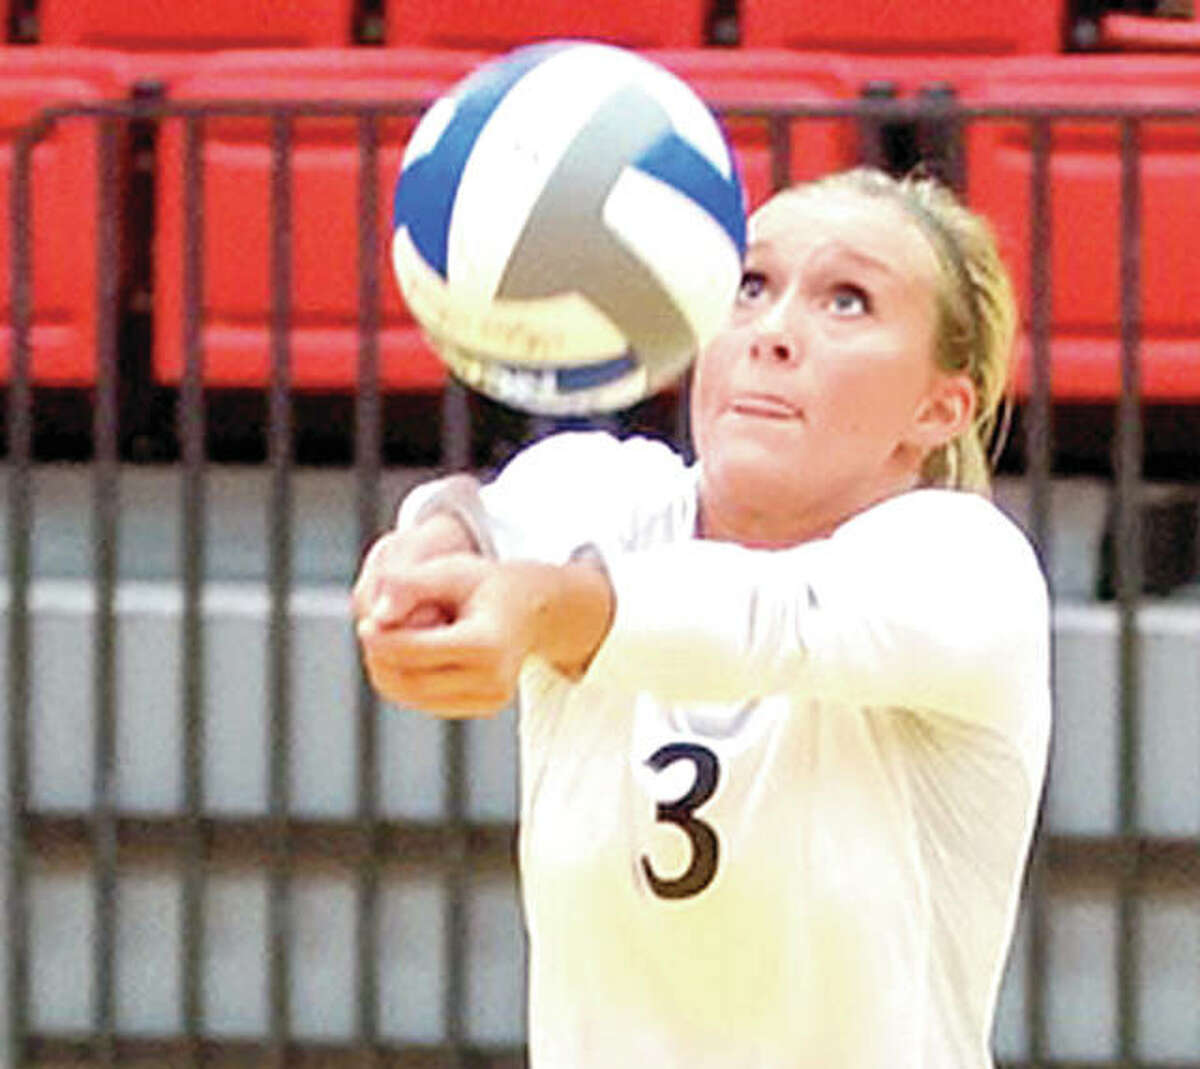 SIUE's Katie shashack, a senior from Edwardsville, has been named Ohio Valley conference Defensive Player of the Week.